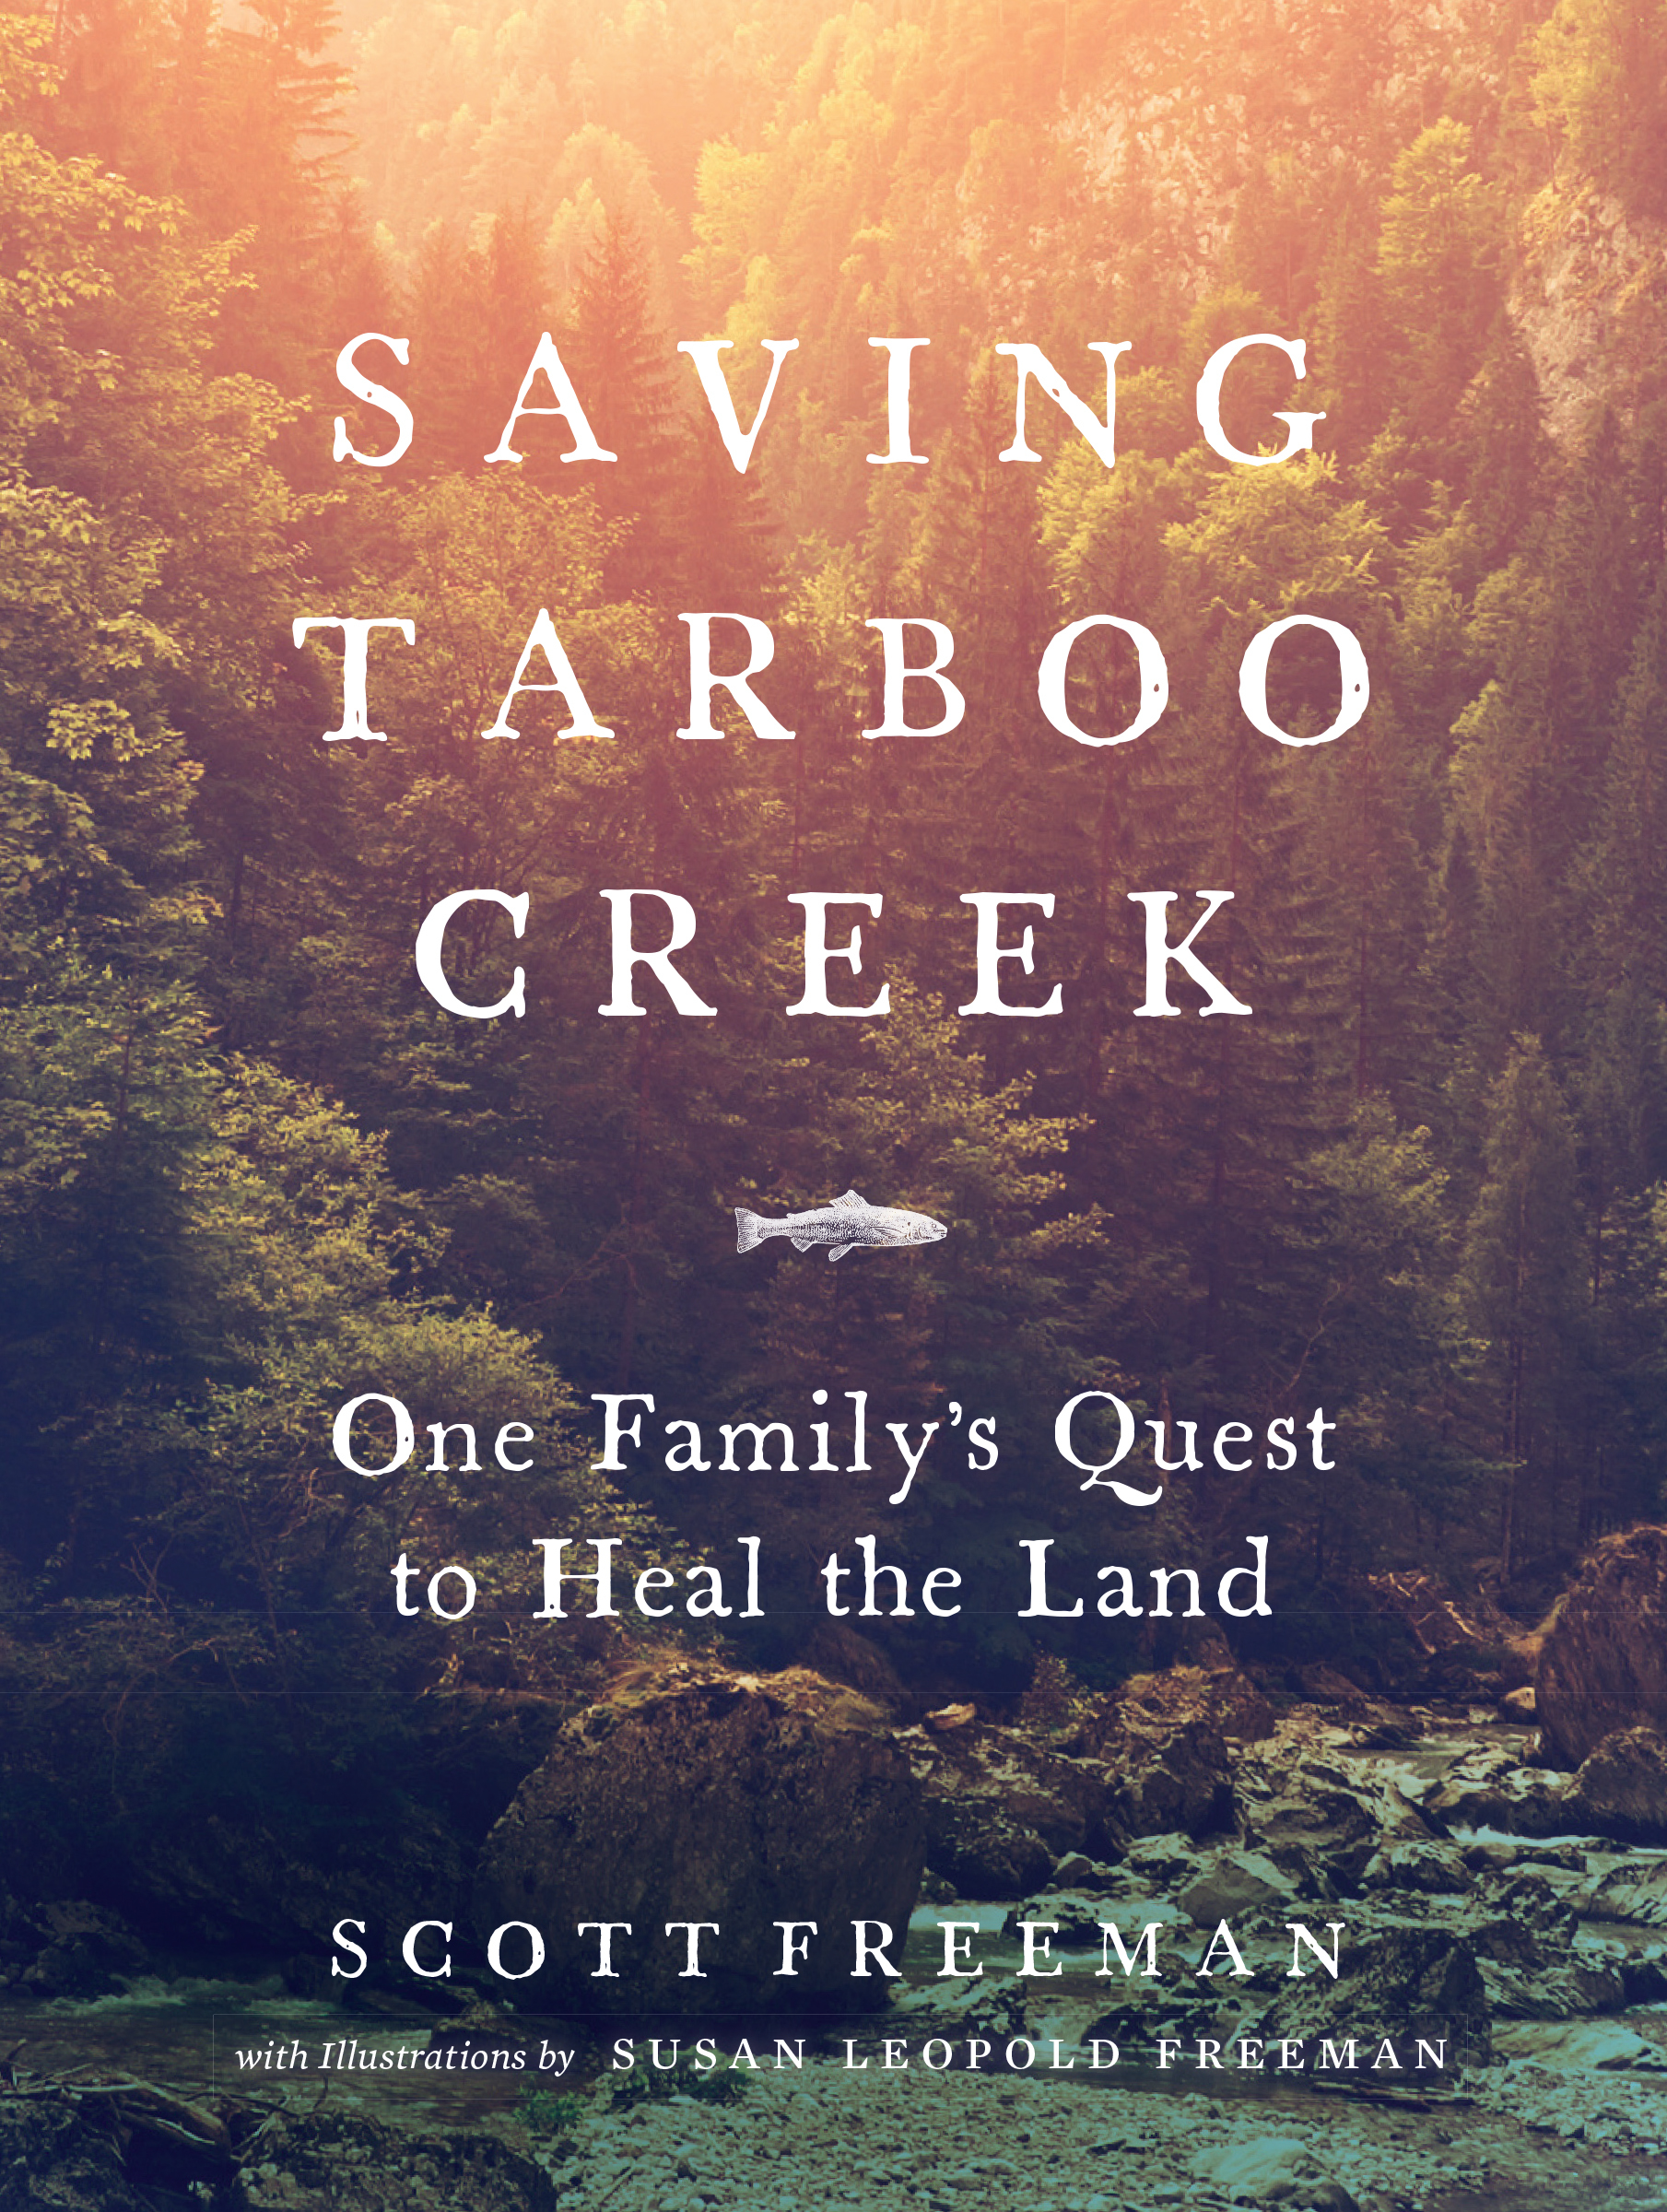 Saving Tarboo Creek One Family's Quest to Heal the Land